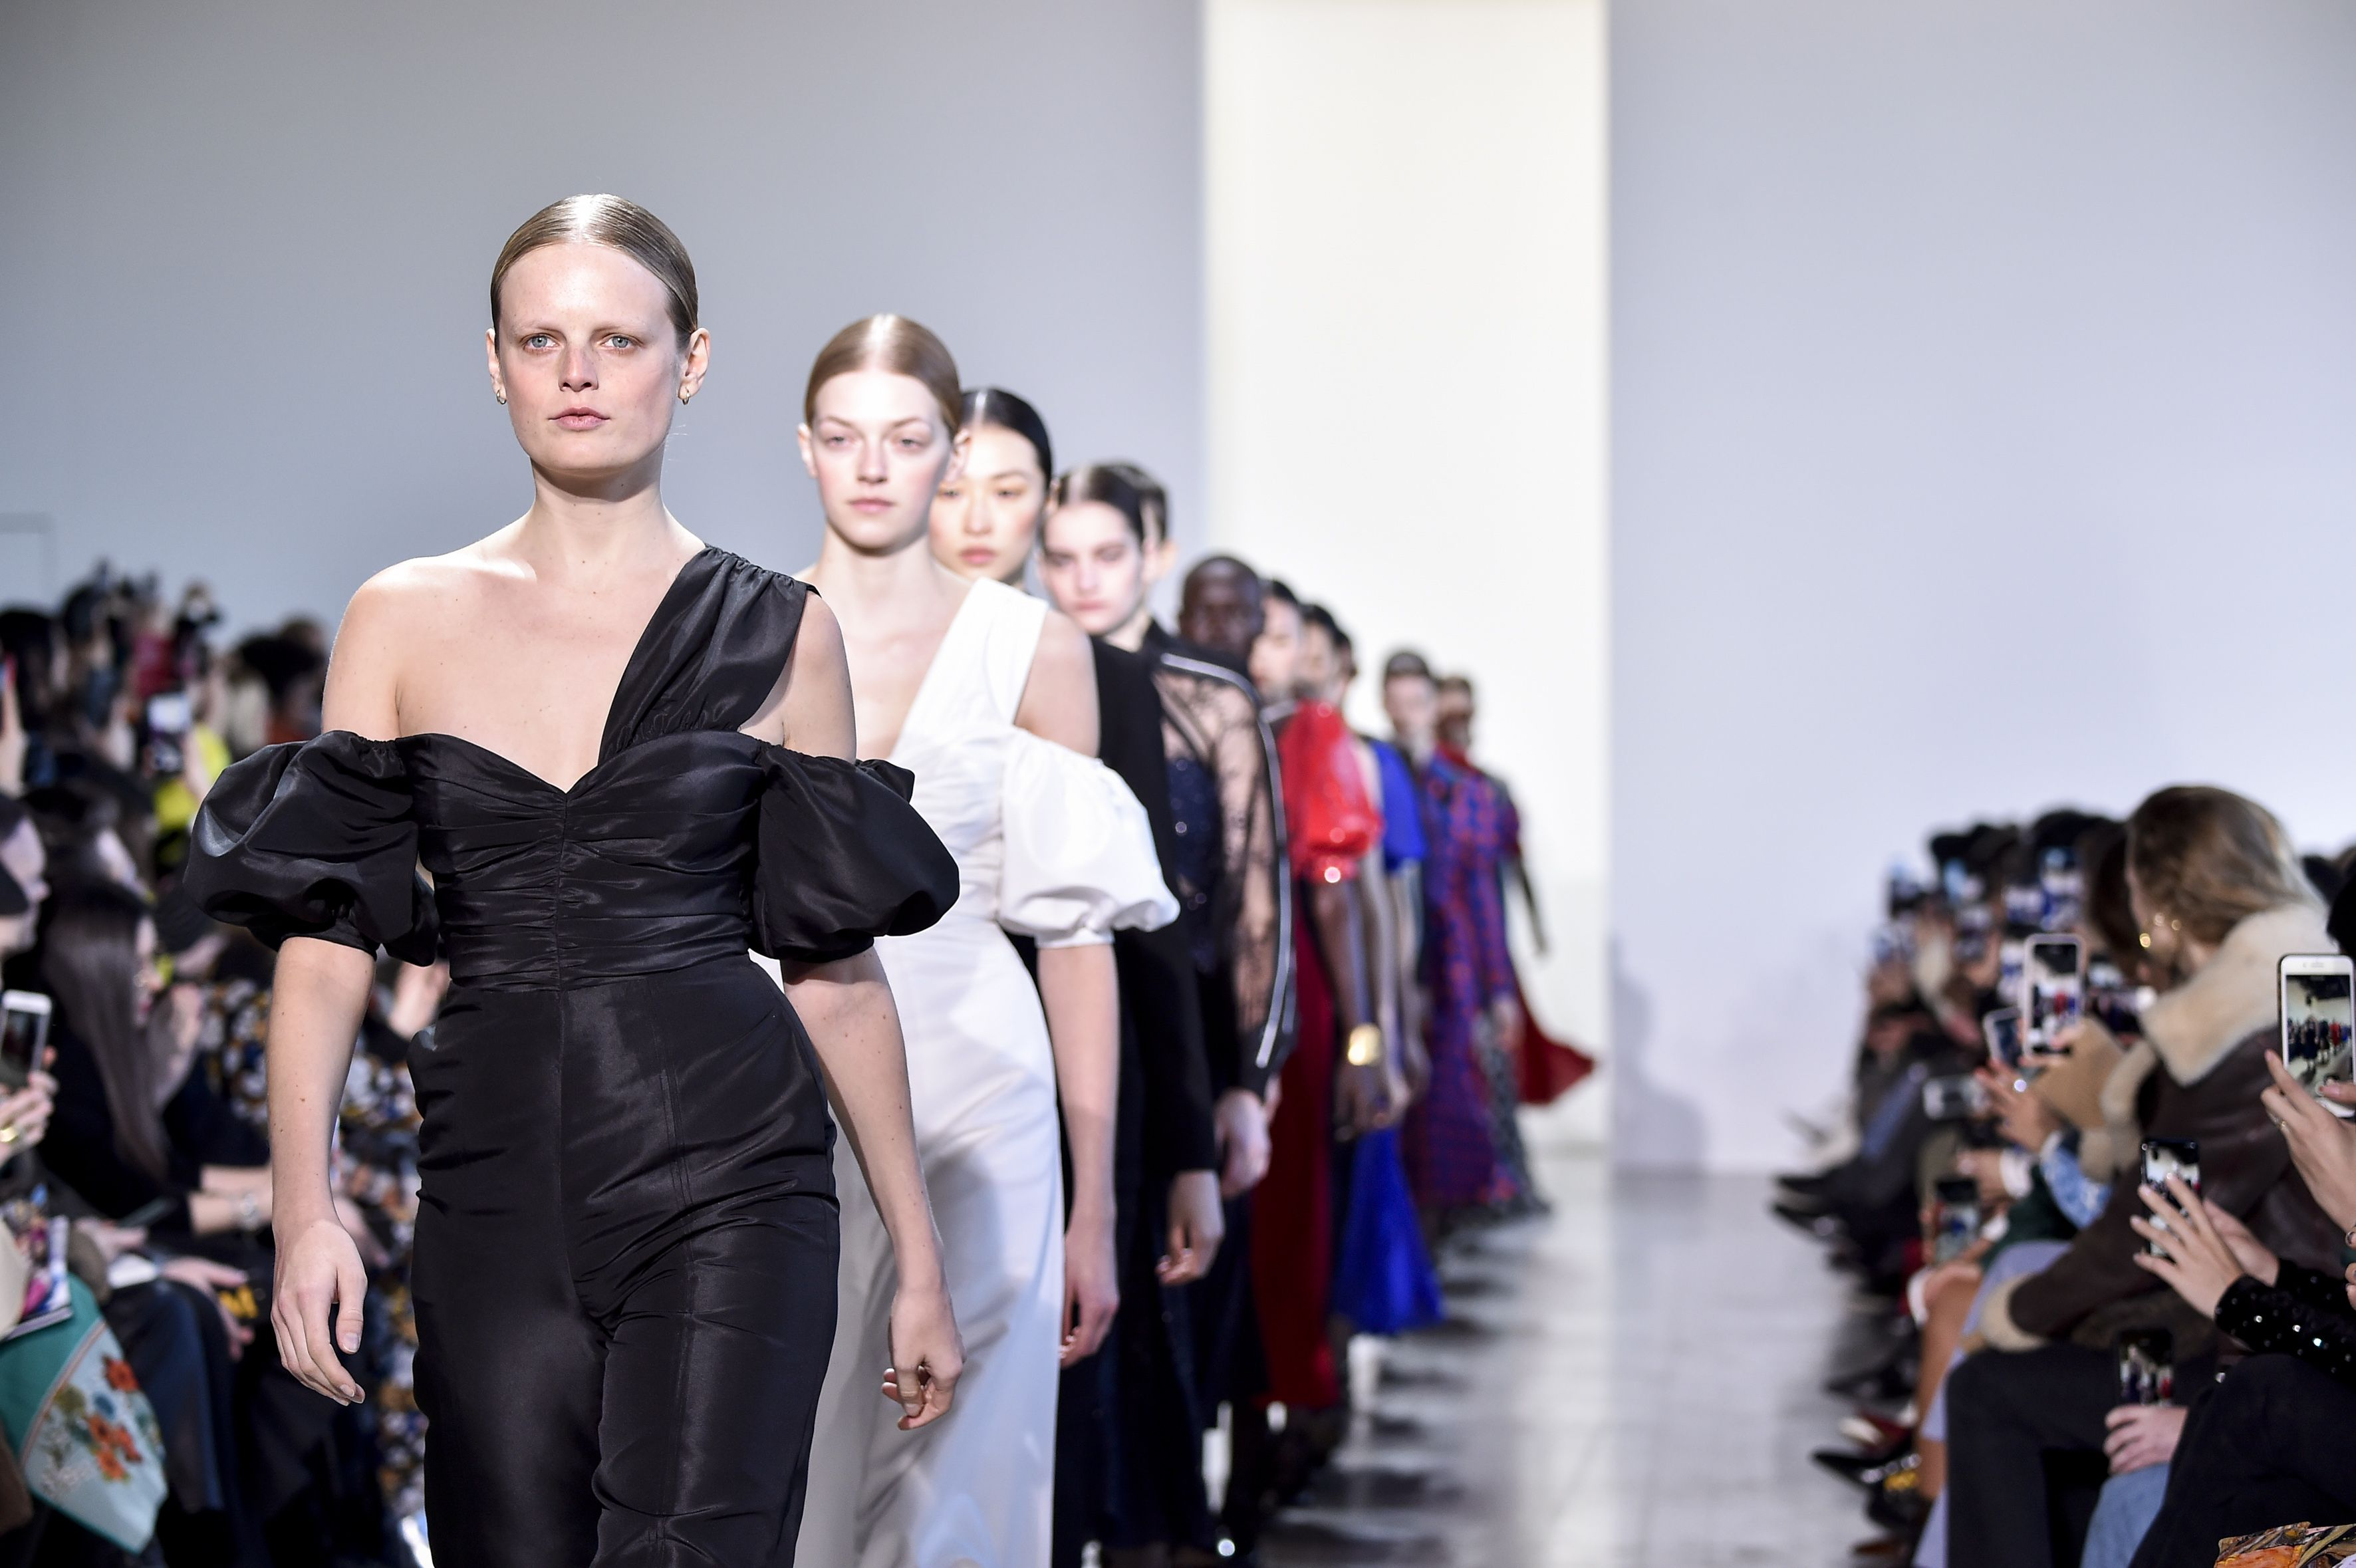 London Fashion Week Announces Its First Public Shows